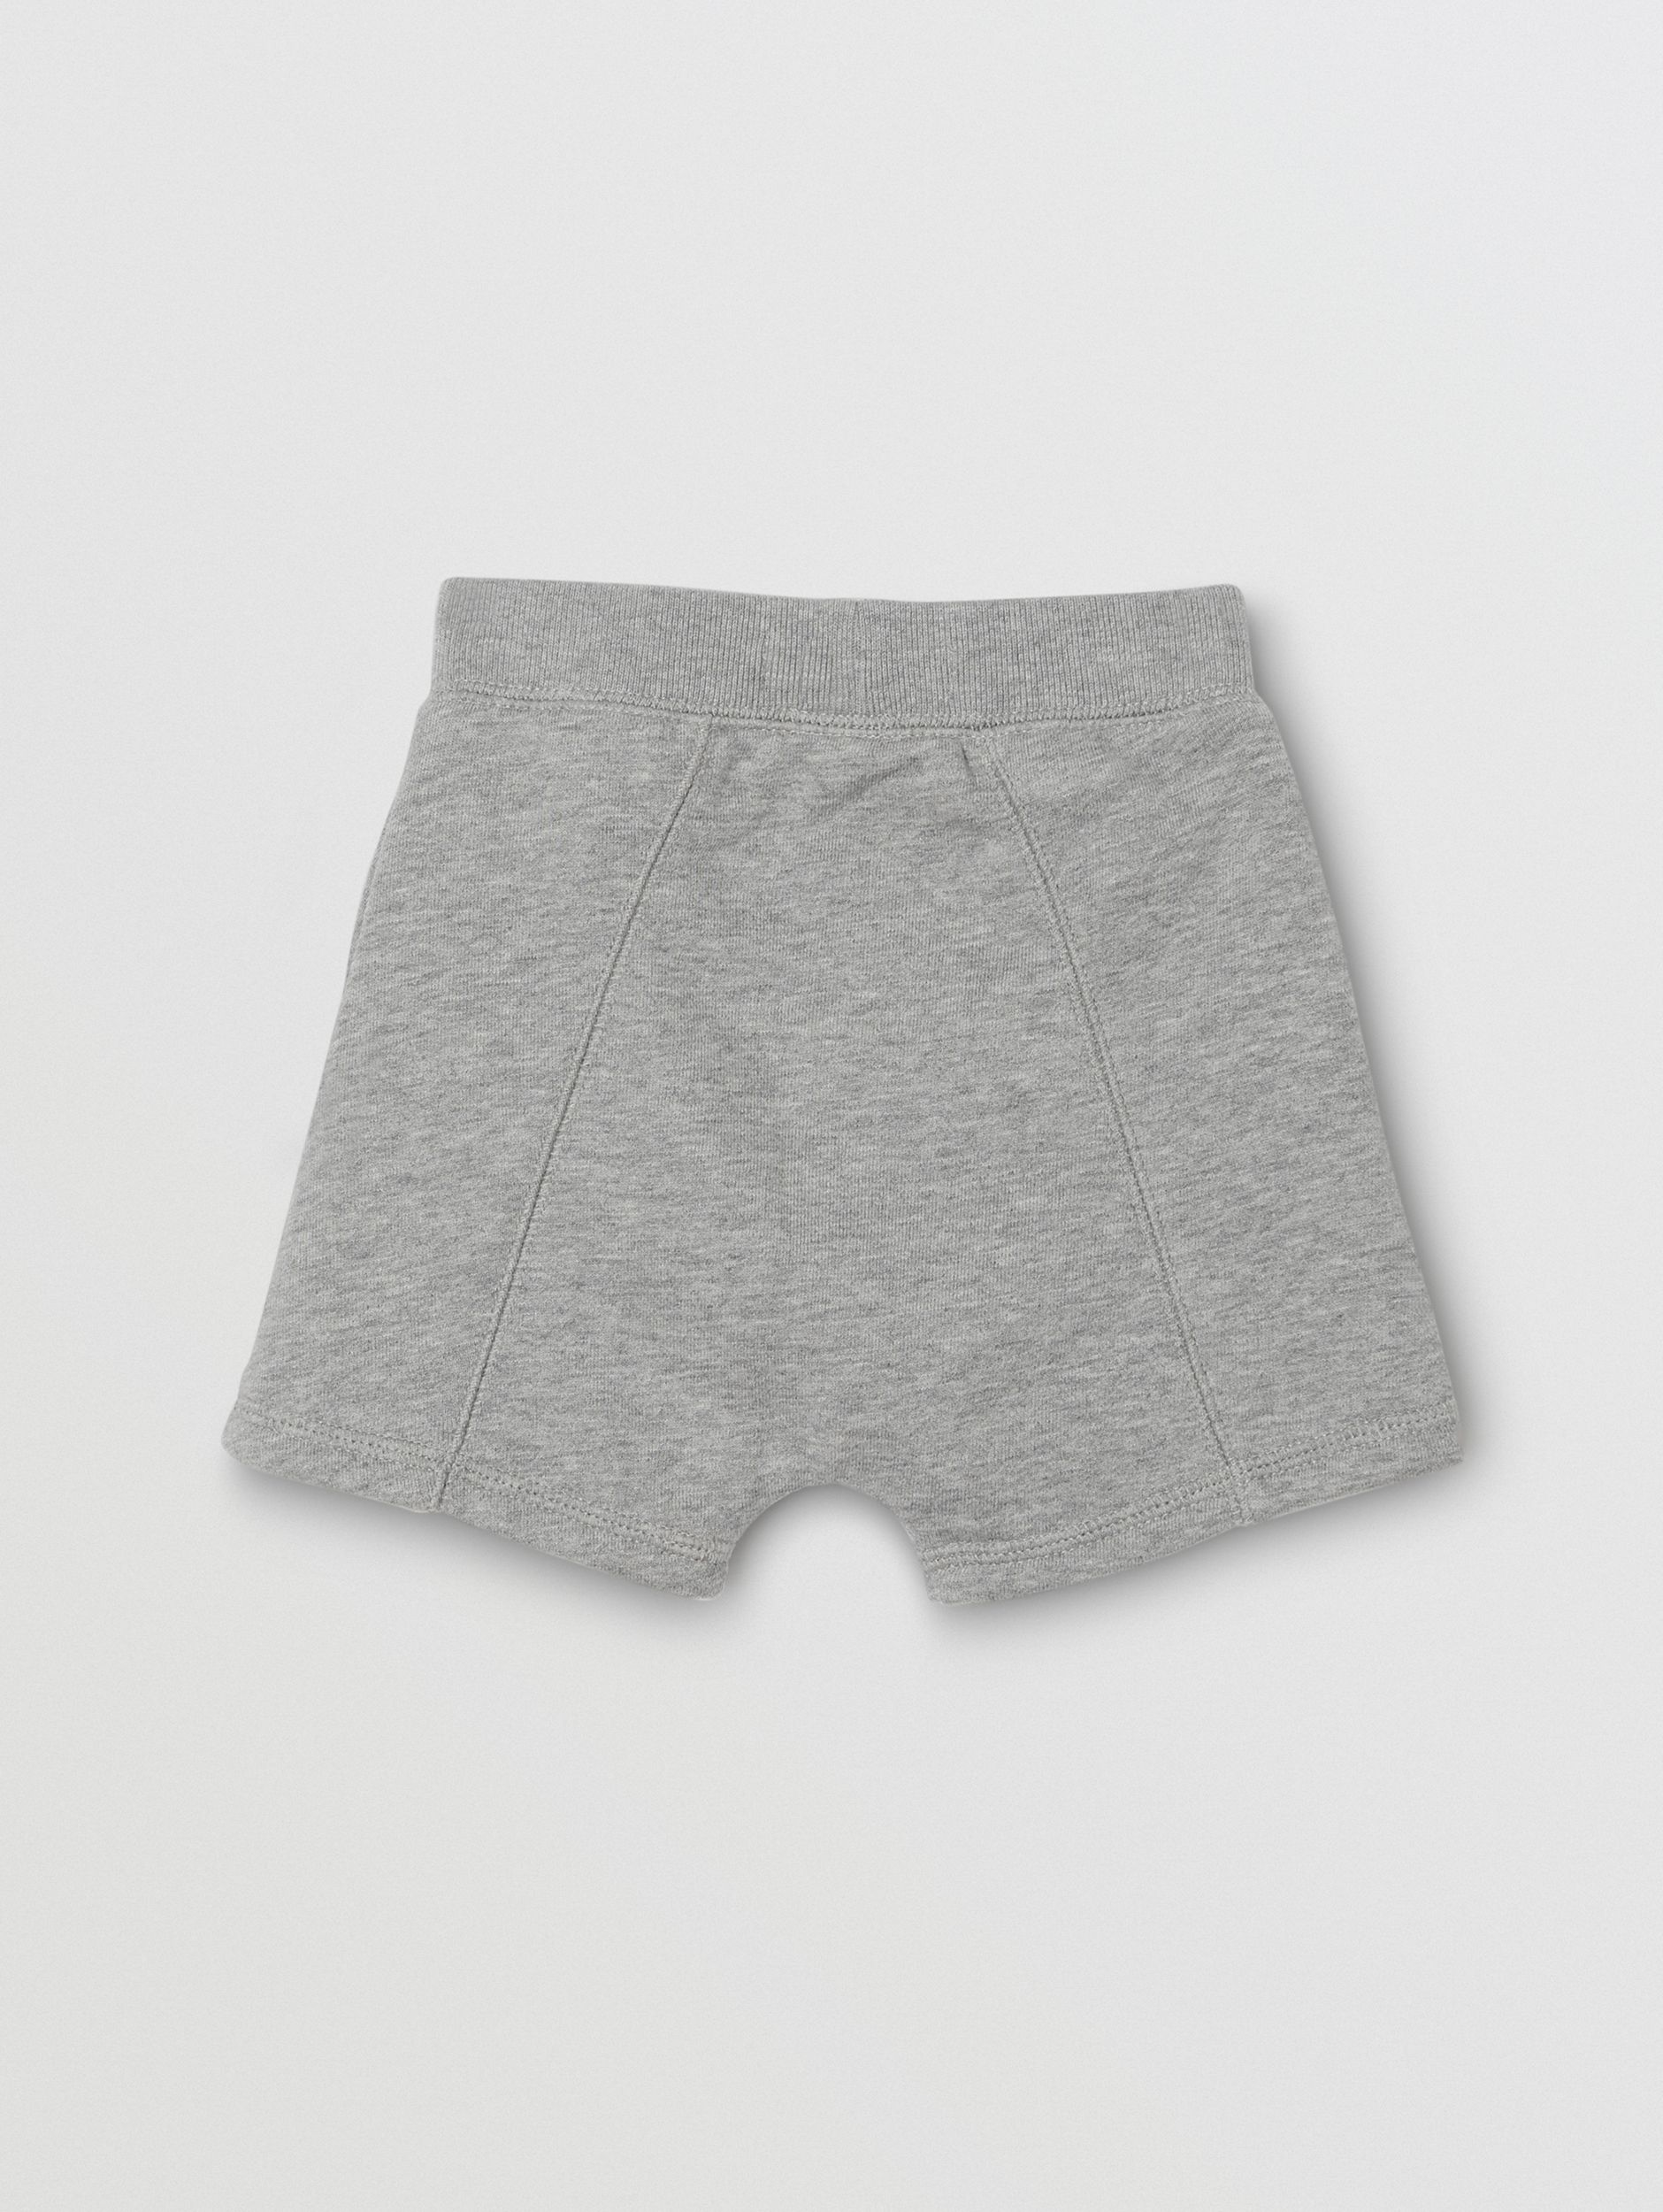 Logo Detail Cotton Drawcord Shorts in Grey Melange - Children | Burberry United States - 4